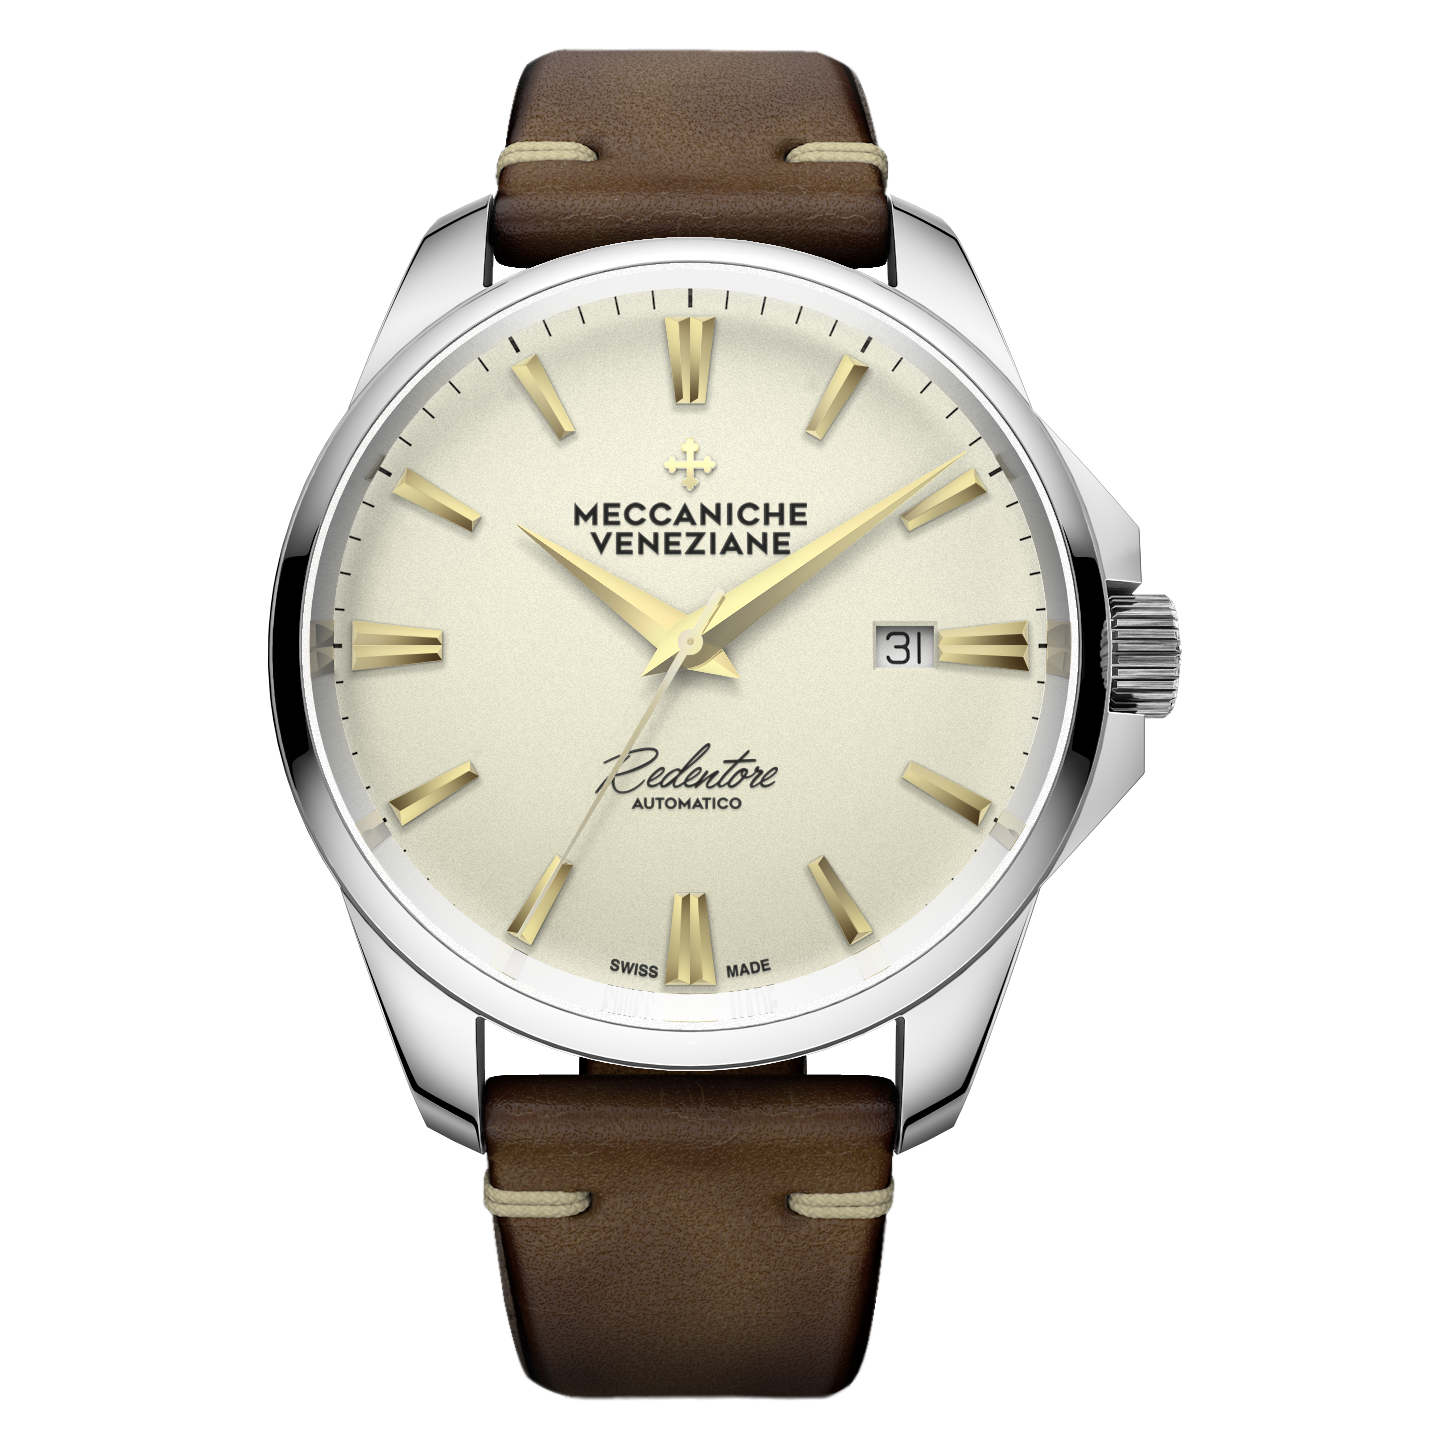 Meccaniche Veneziane creme dial gold hands Rendentore automatic on leather strap -1201006